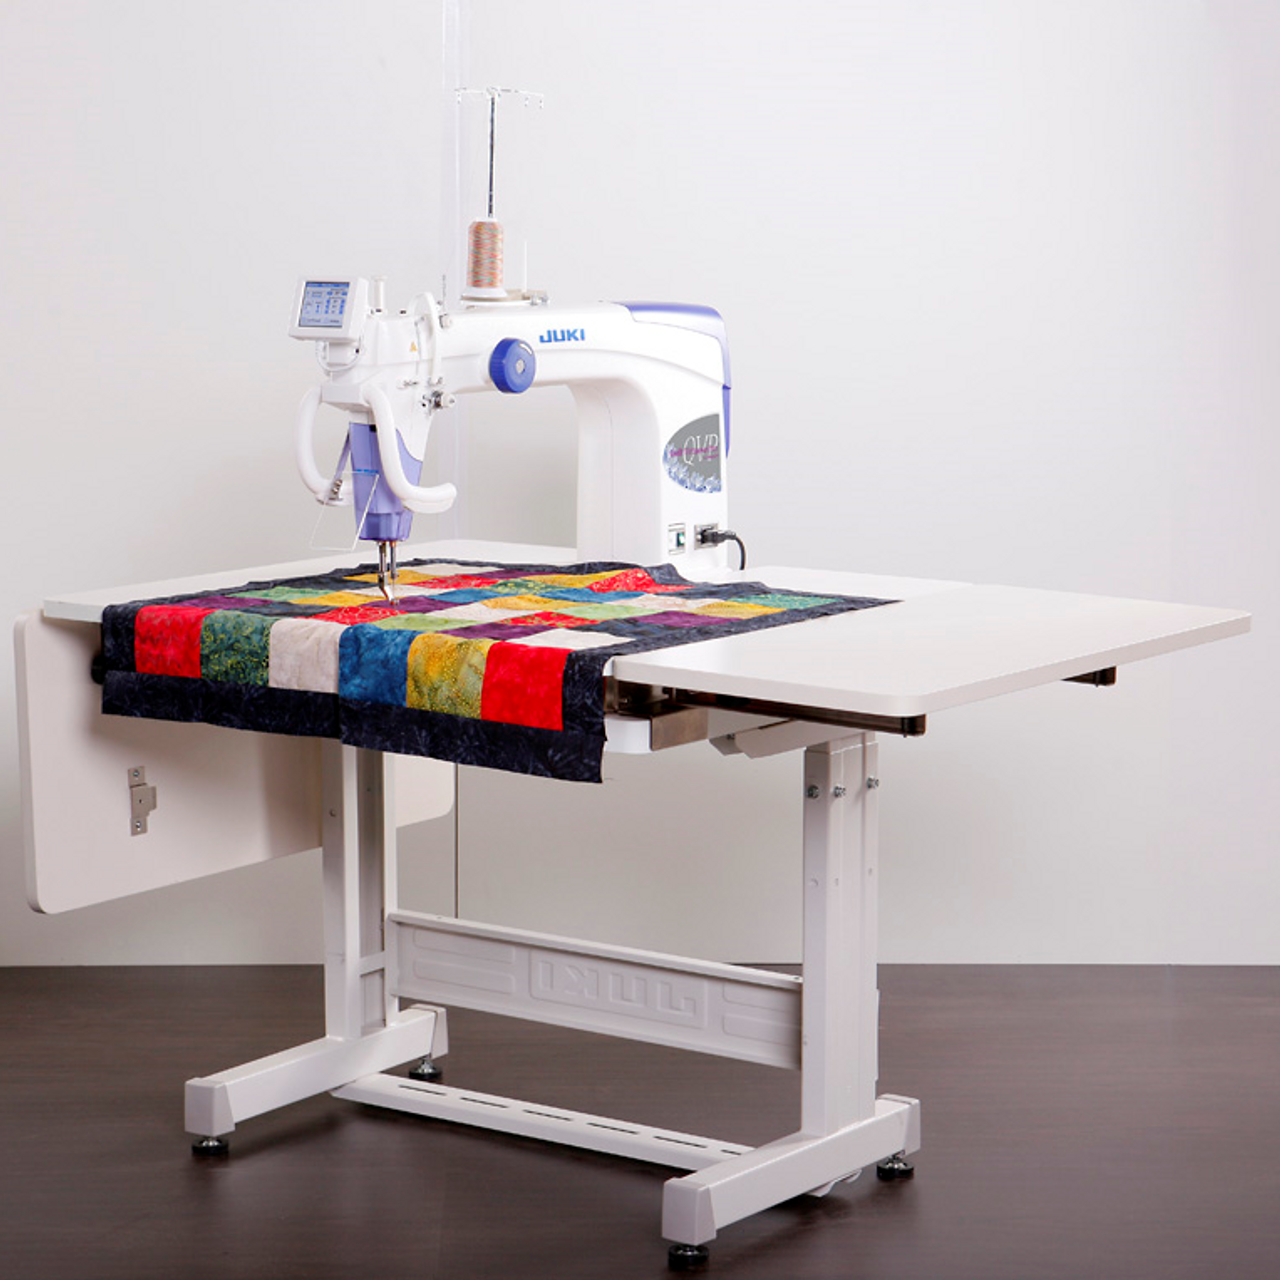 Juki Tl 2200qvp S Long Arm Quilting Machine With Sit Down Table